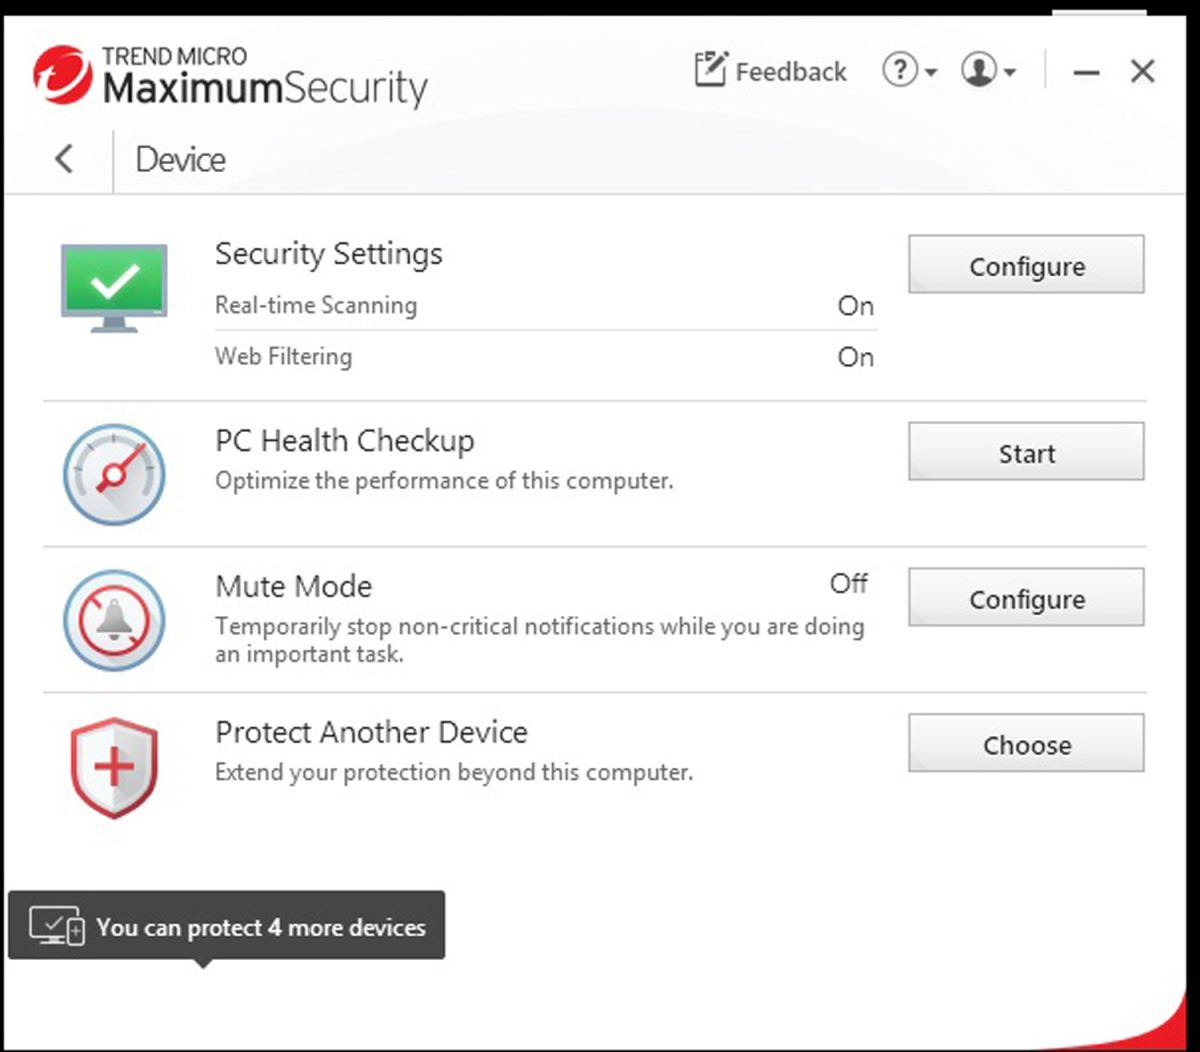 Trend micro security agent is loading